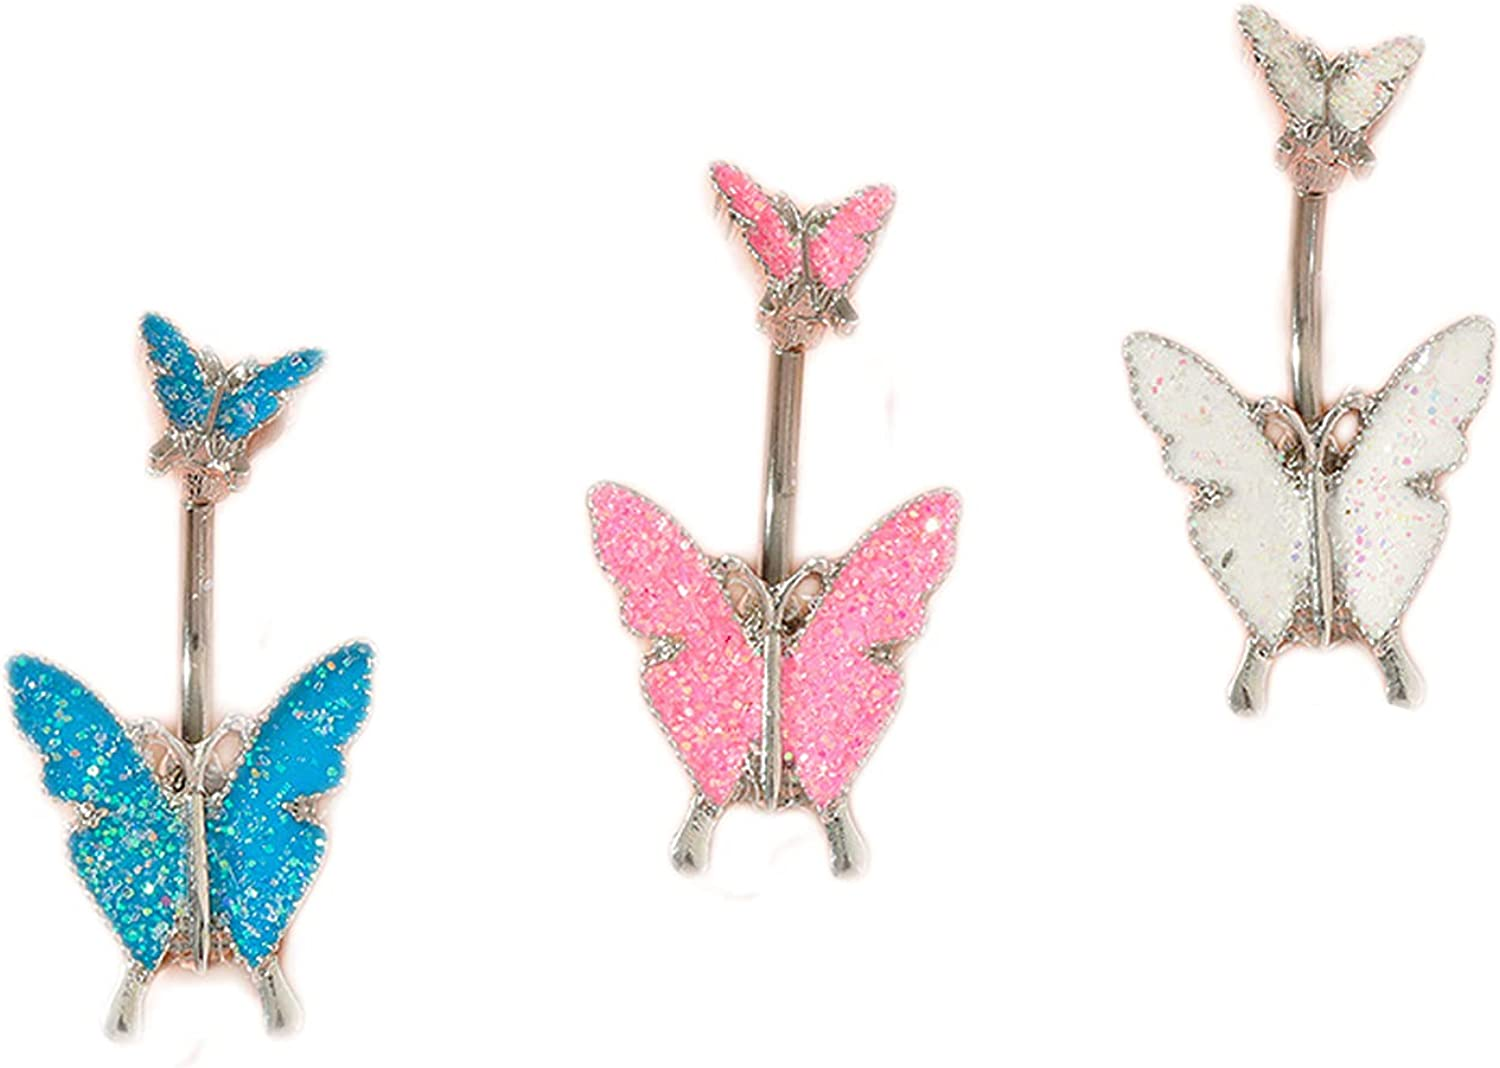 COLORFUL BLING 3Pcs Delicate Cubic Zircon Butterfly Dangle Belly Button Rings for Women Girls Surgical Steel Animals Navel Barbell Body Piercing Jewelry